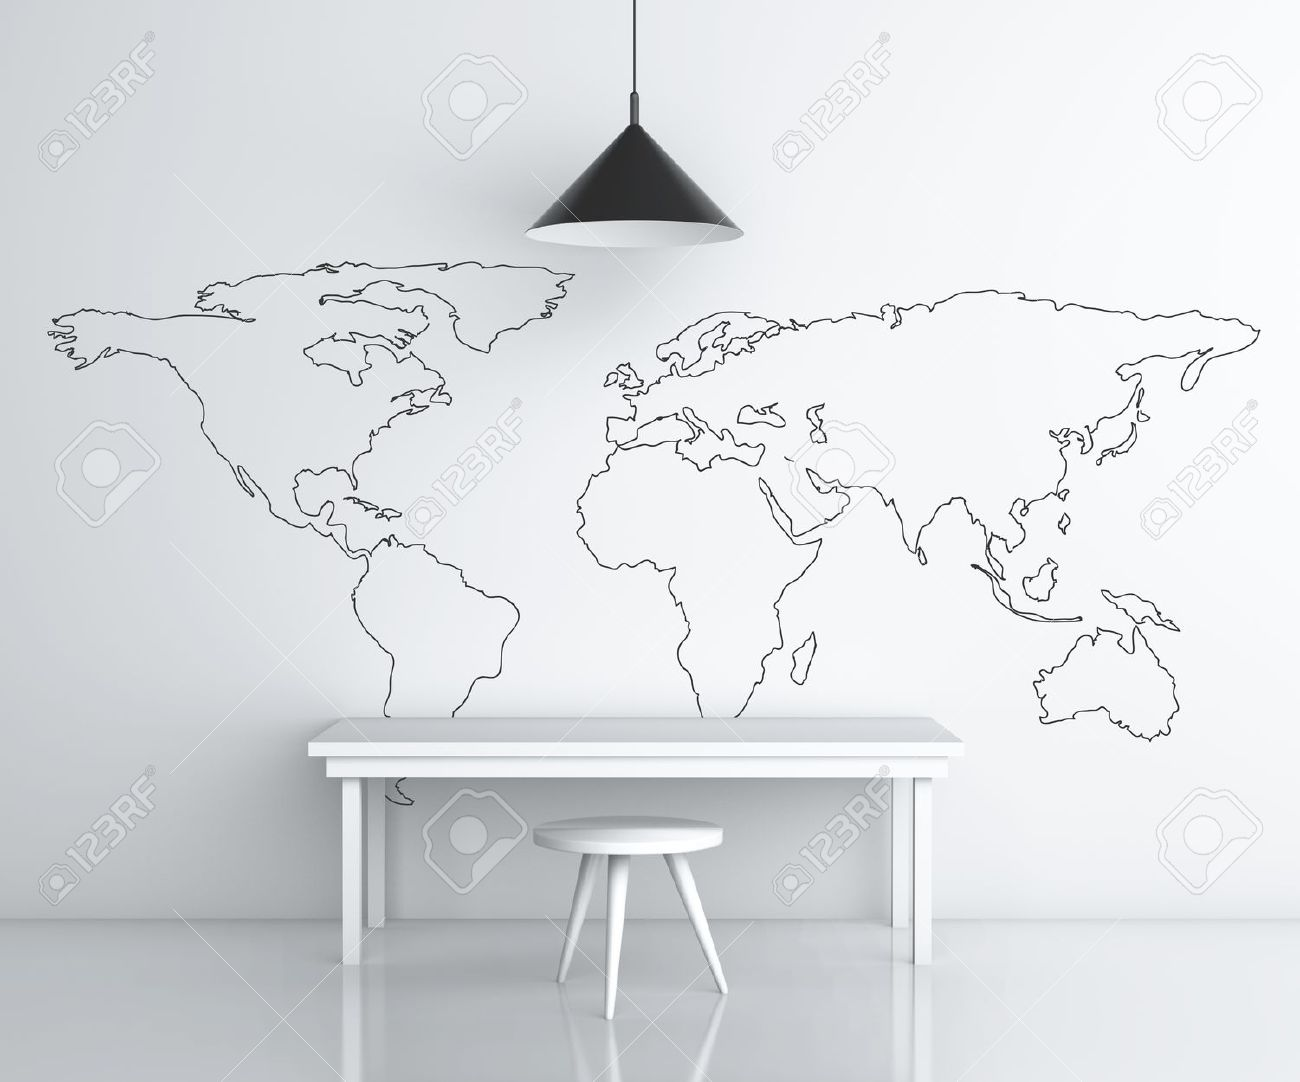 Room with furniture and drawing world map on wall stock photo room with furniture and drawing world map on wall stock photo 18187896 gumiabroncs Choice Image